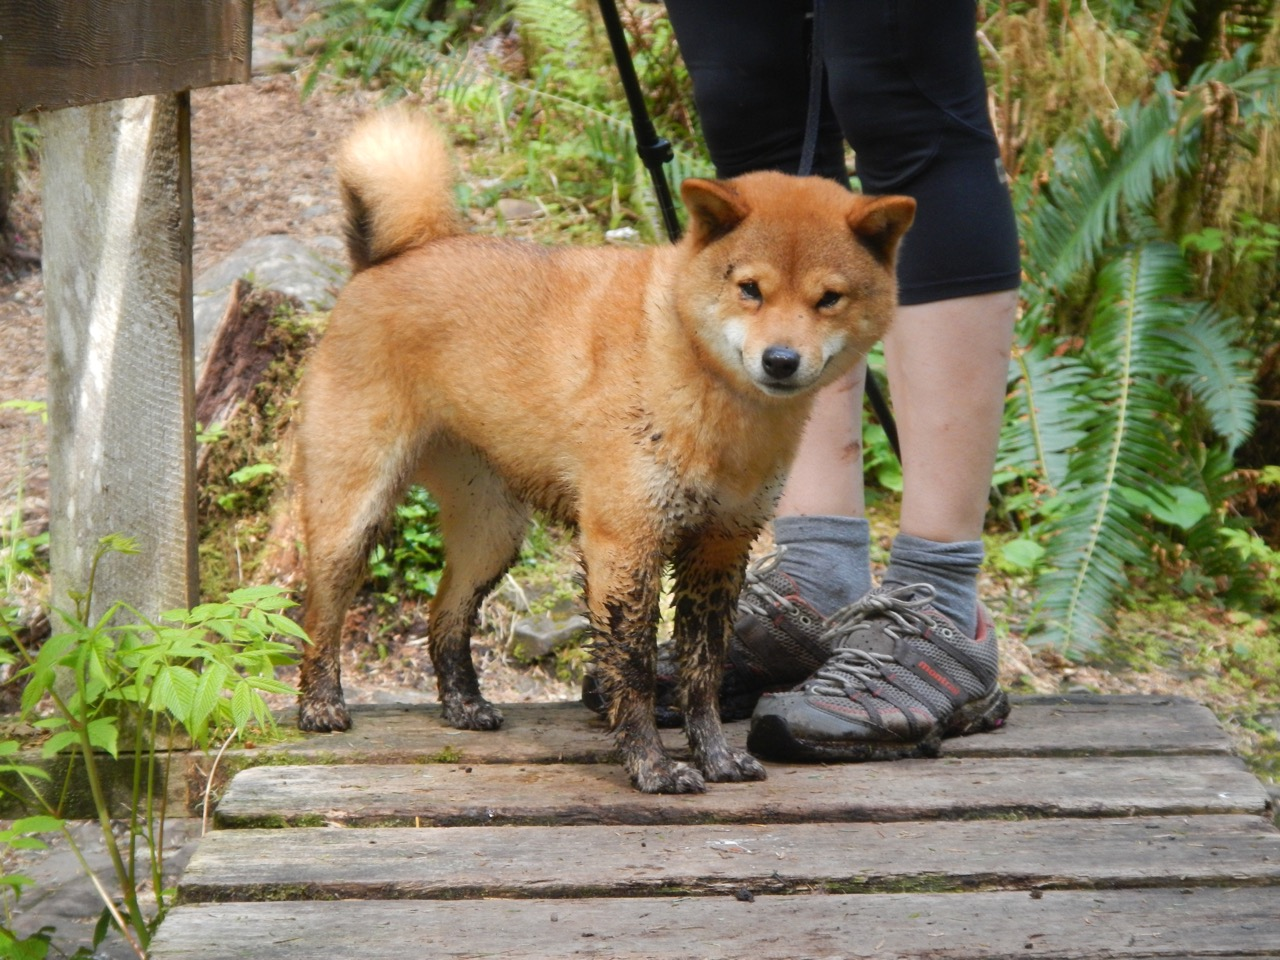 No mud puddle can stand in her way!